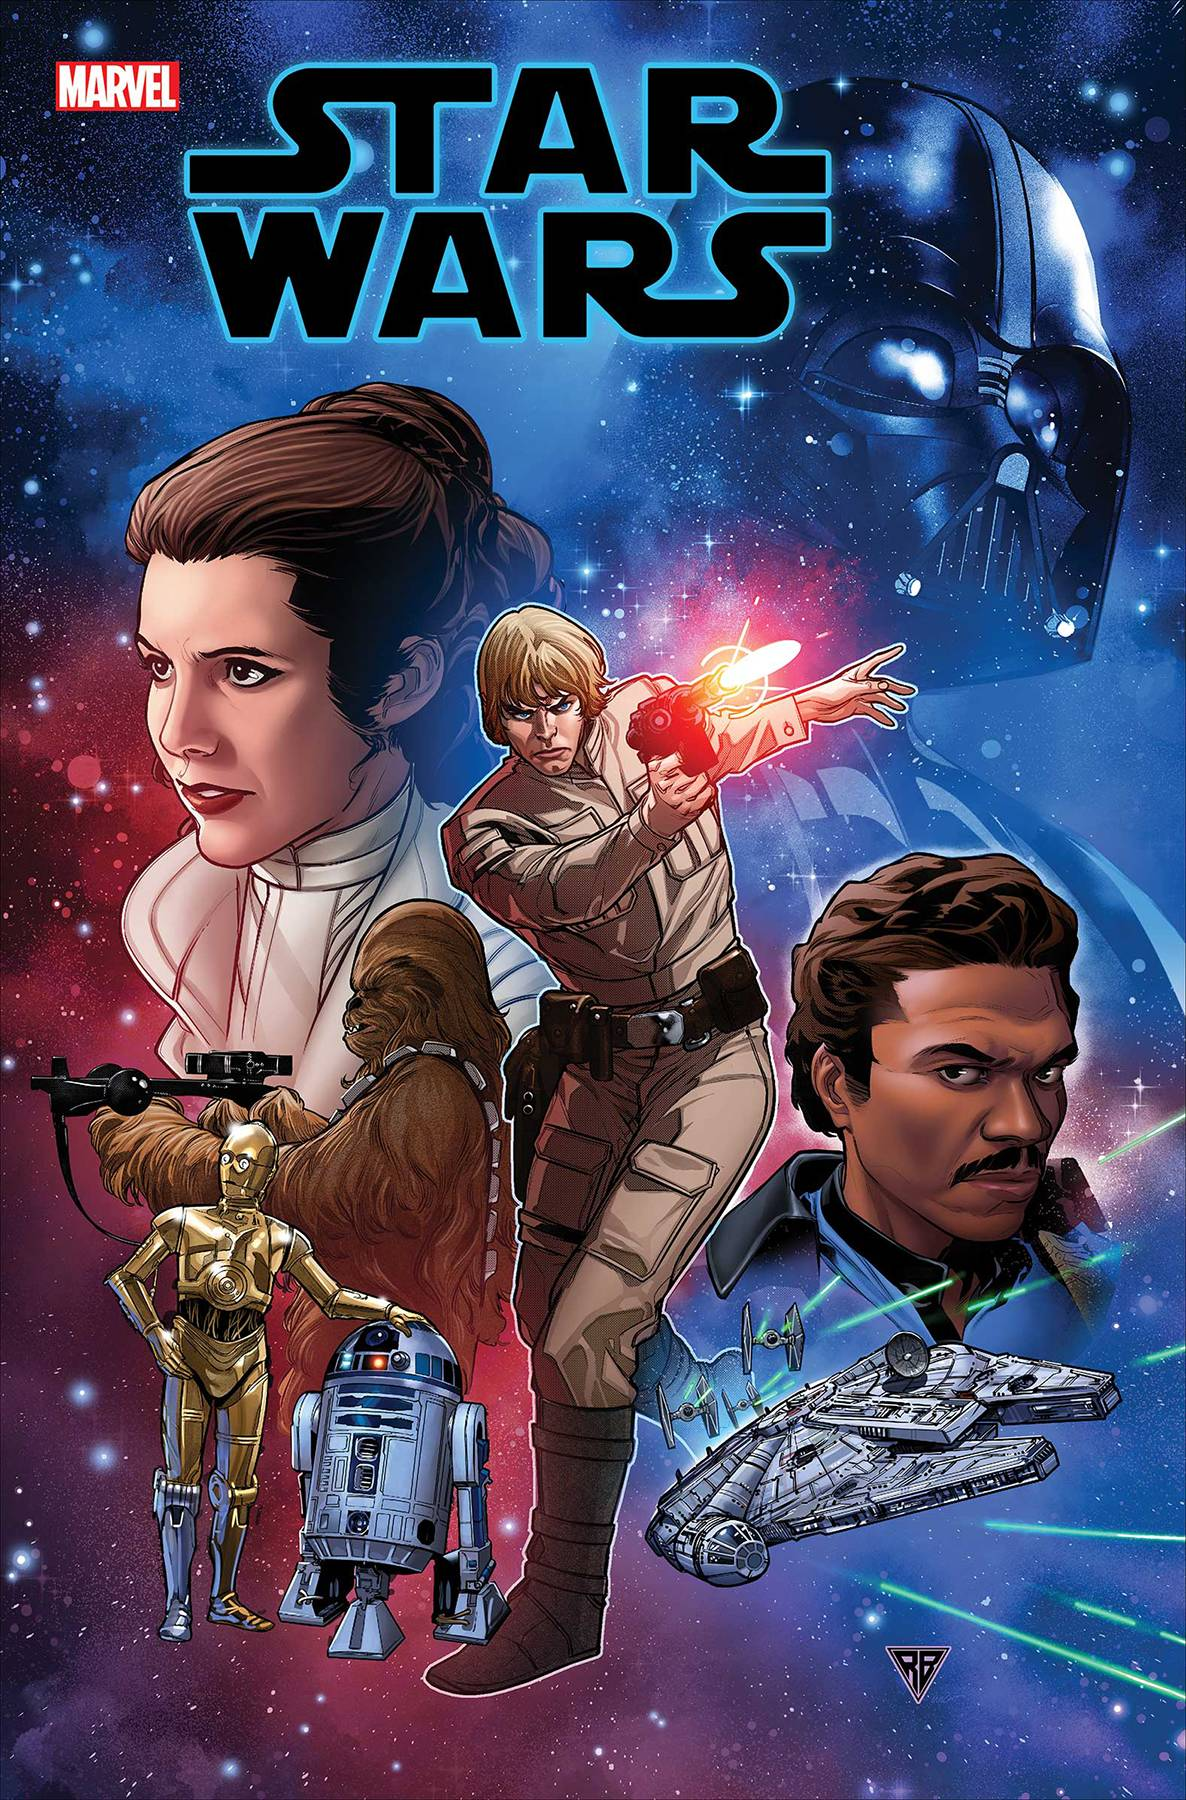 Star Wars Vol 5 #1 Cover A Regular RB Silva Cover